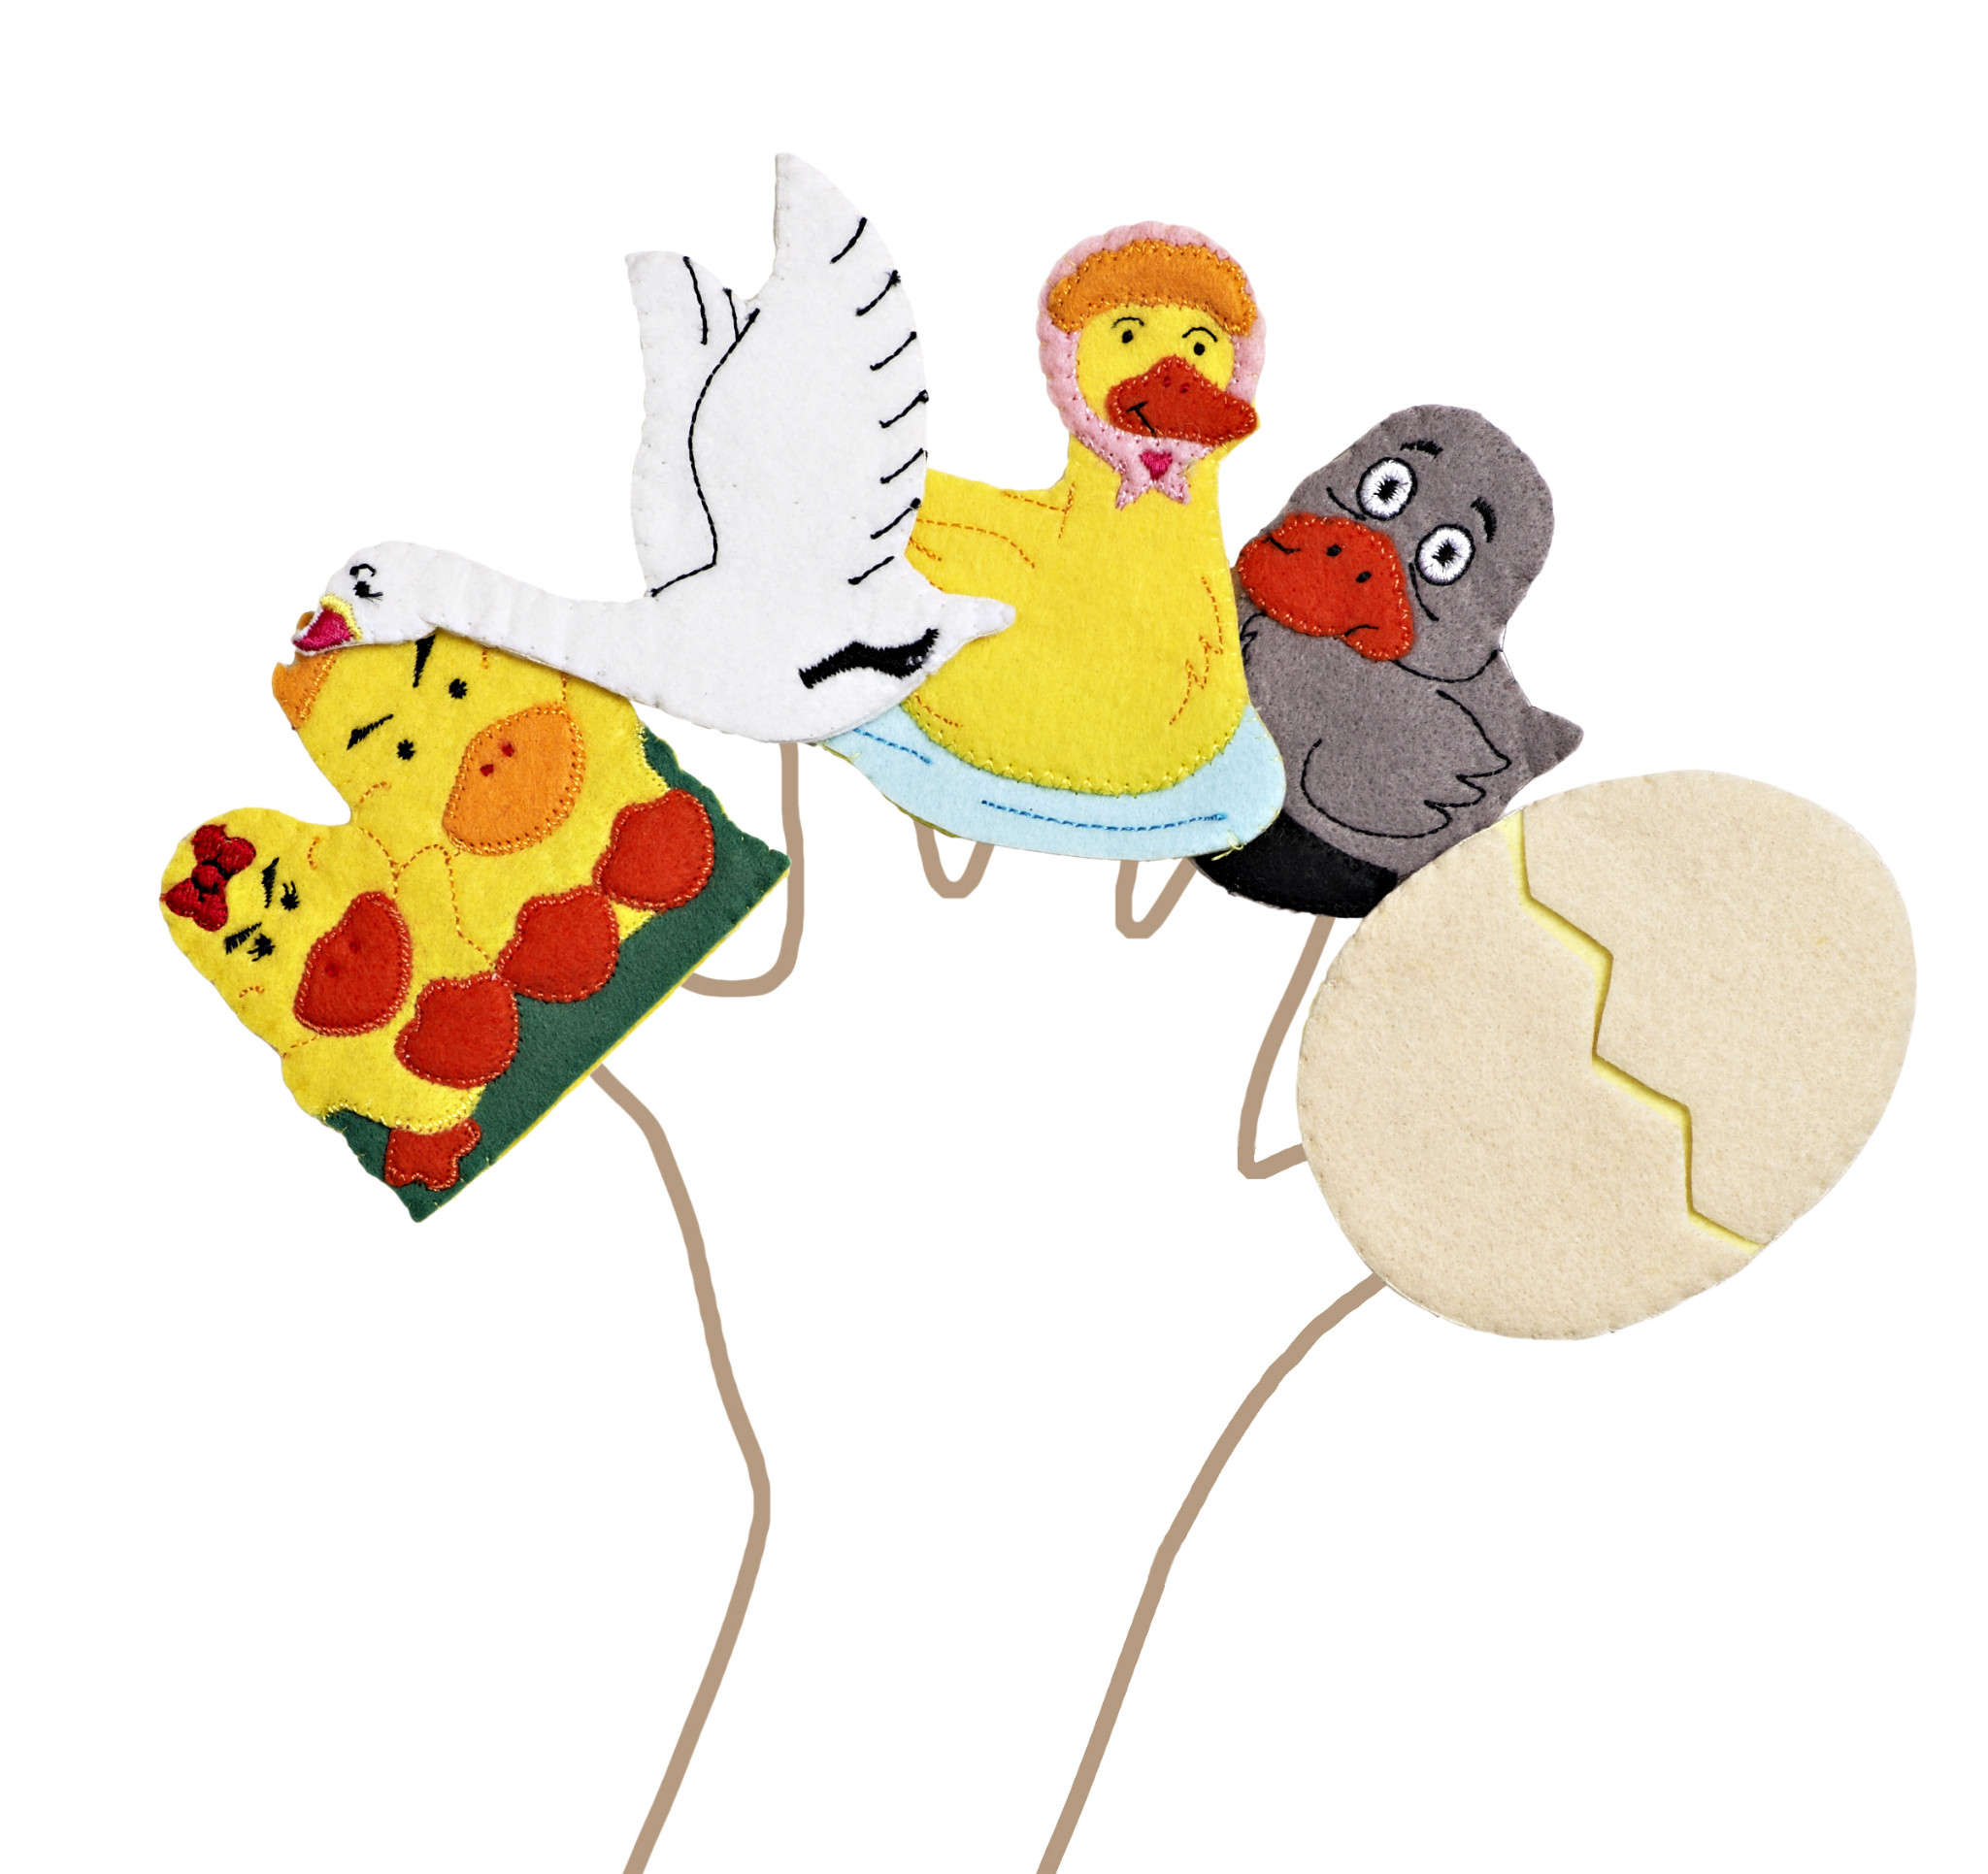 Ugly Duckling Finger Puppets